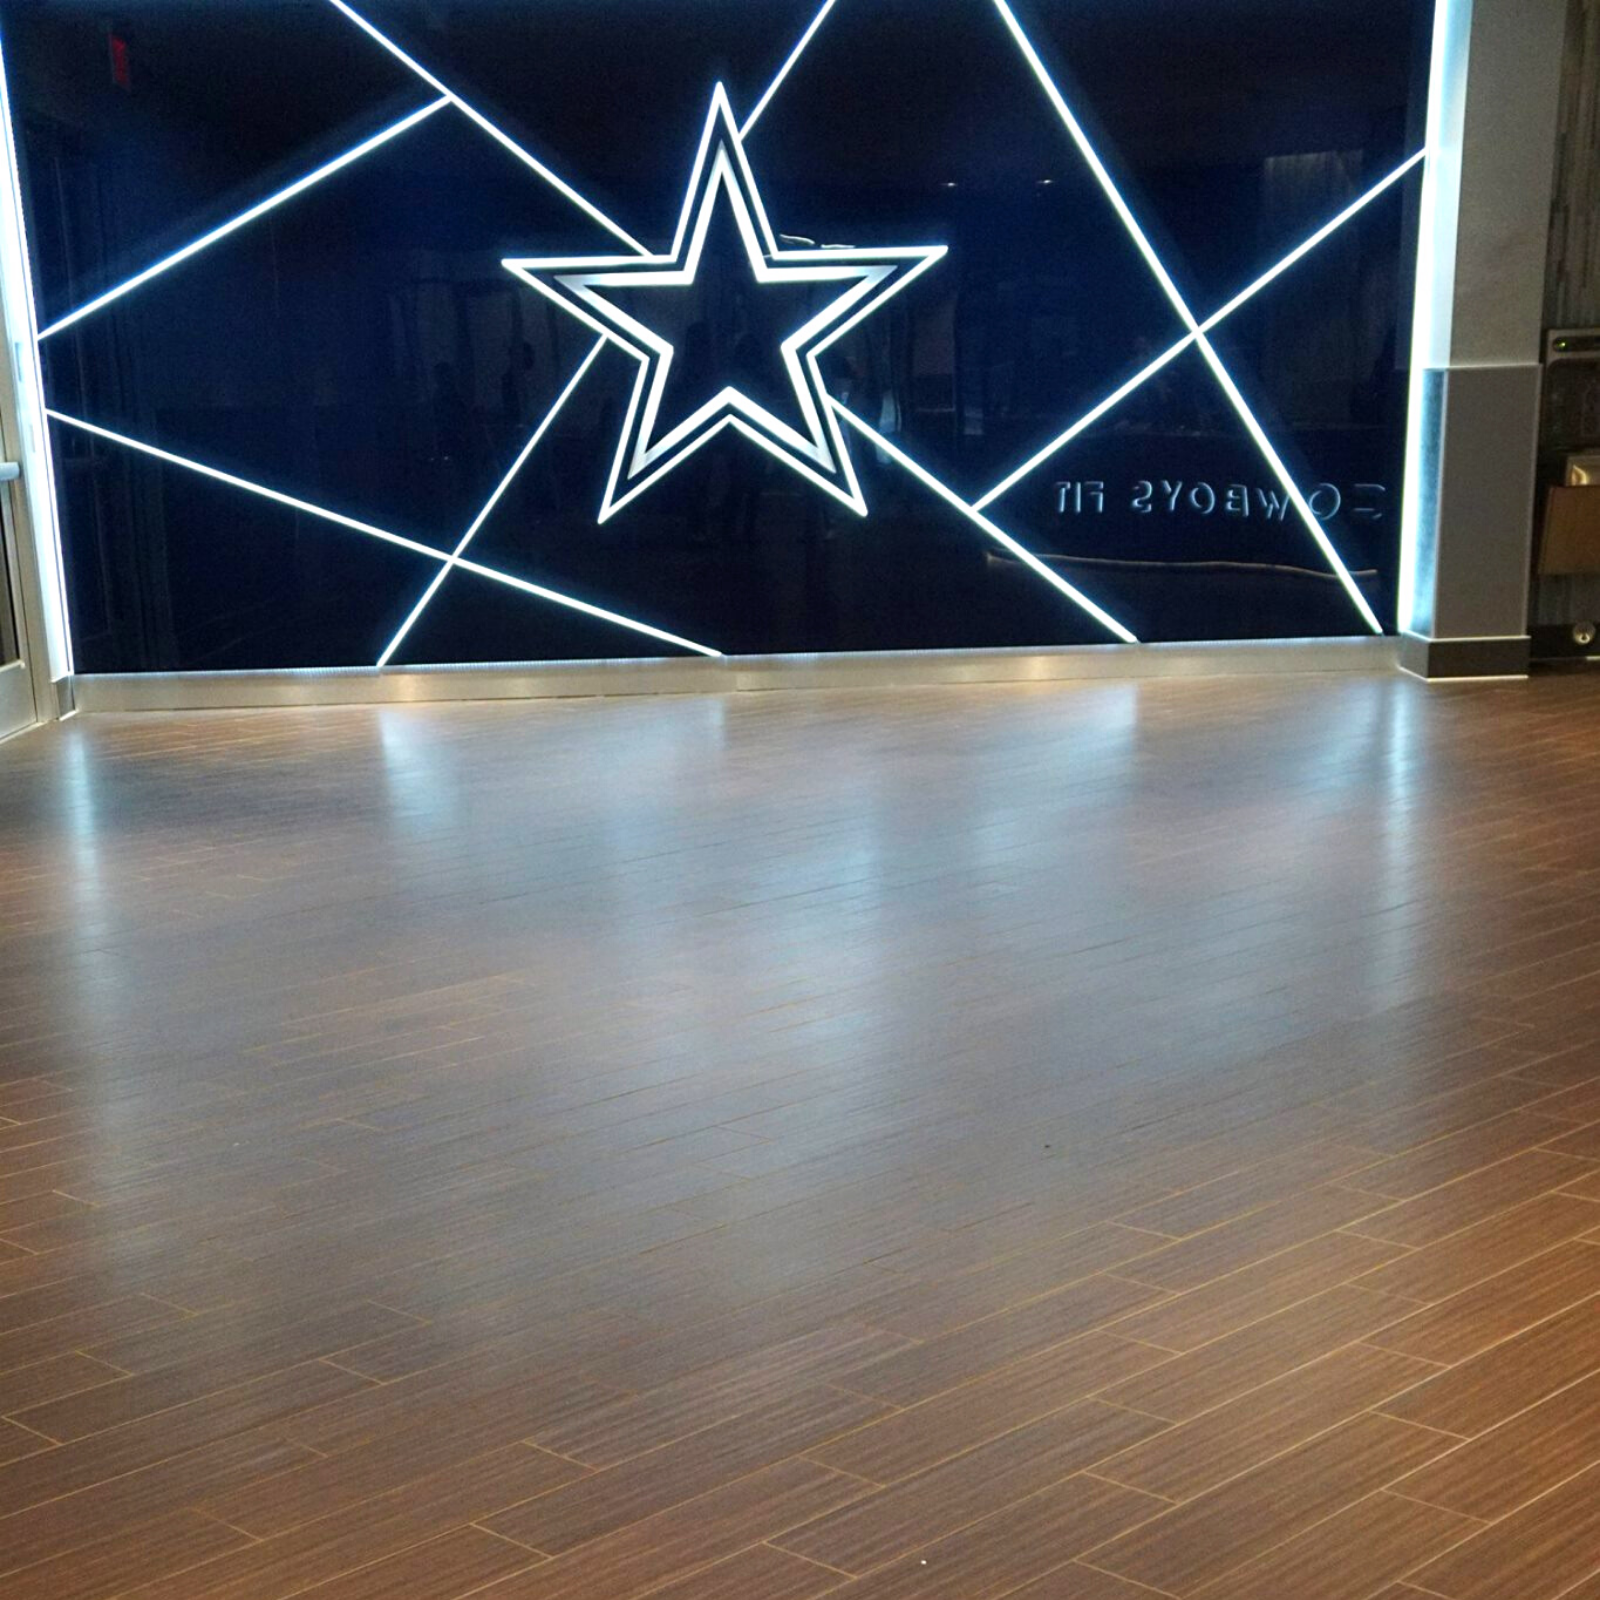 Dallas Cowboys Fit